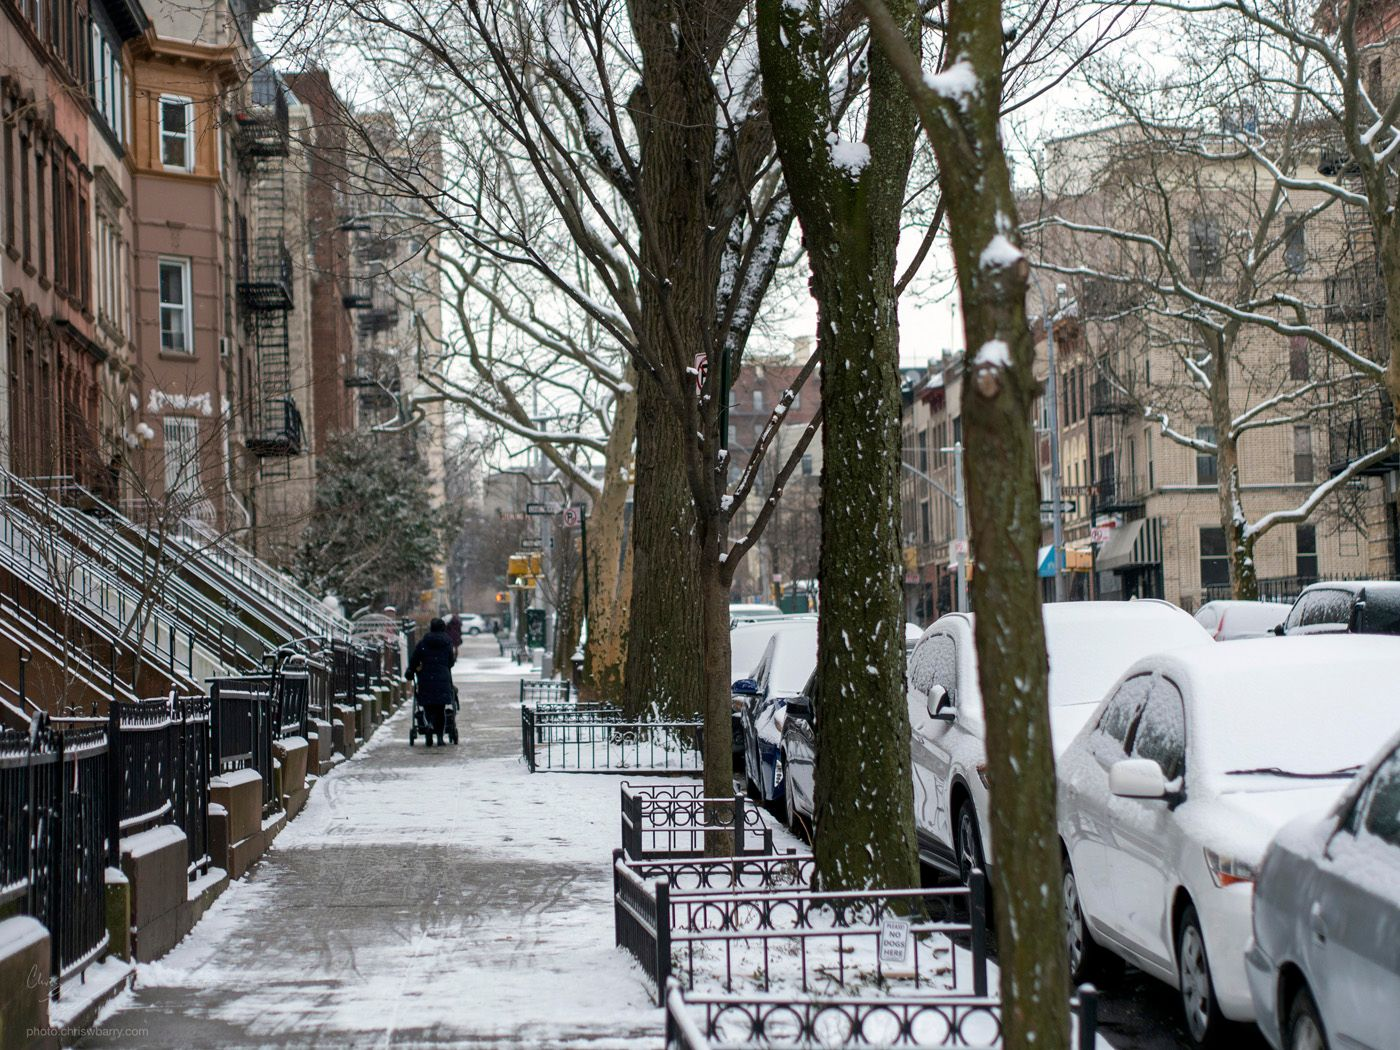 3-1-19: Snow Covered